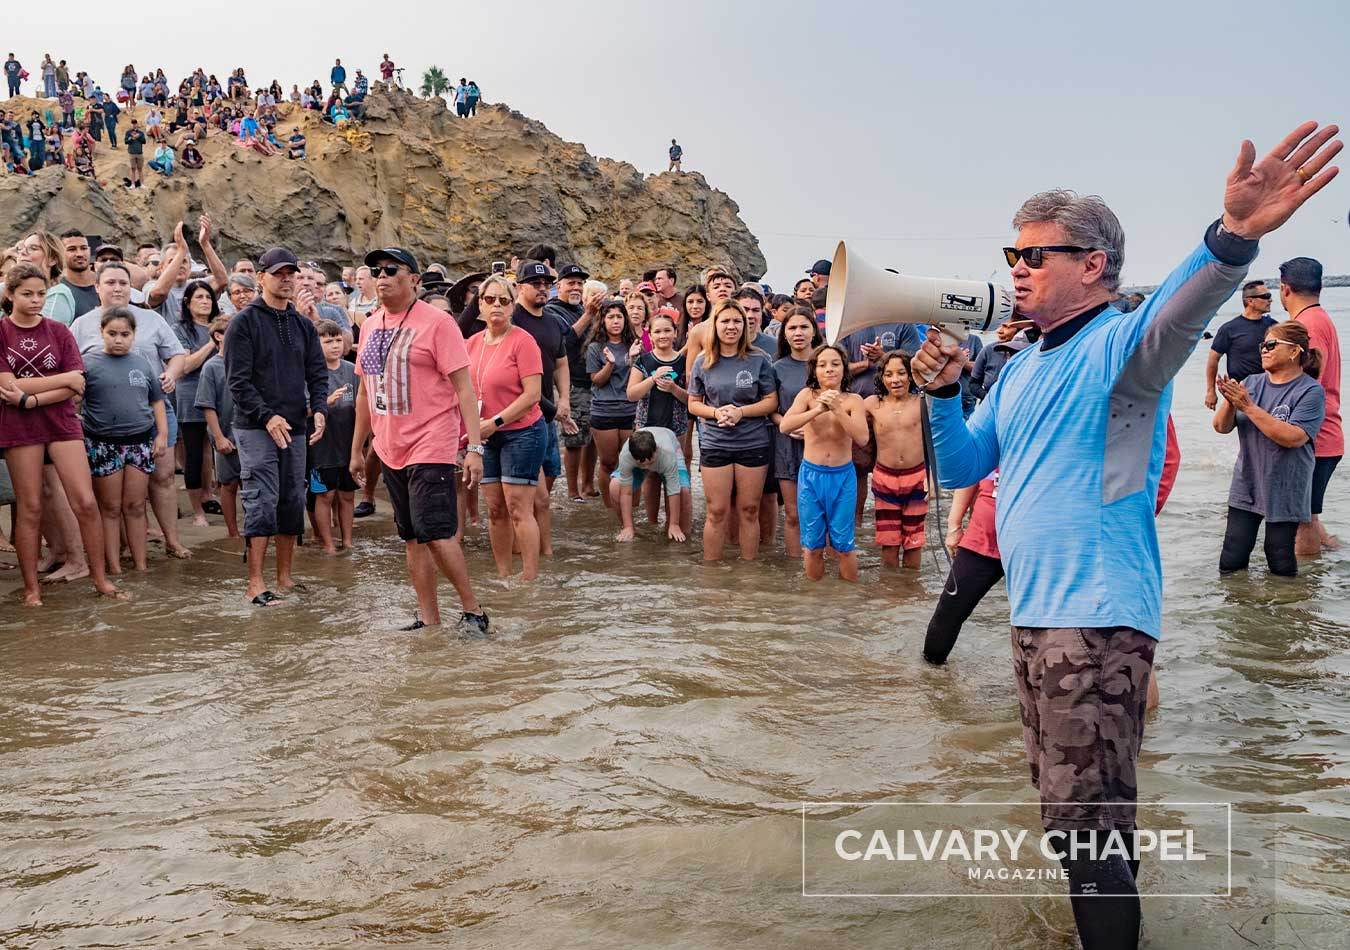 Pastor Jack speaks to massive amount of people at beach